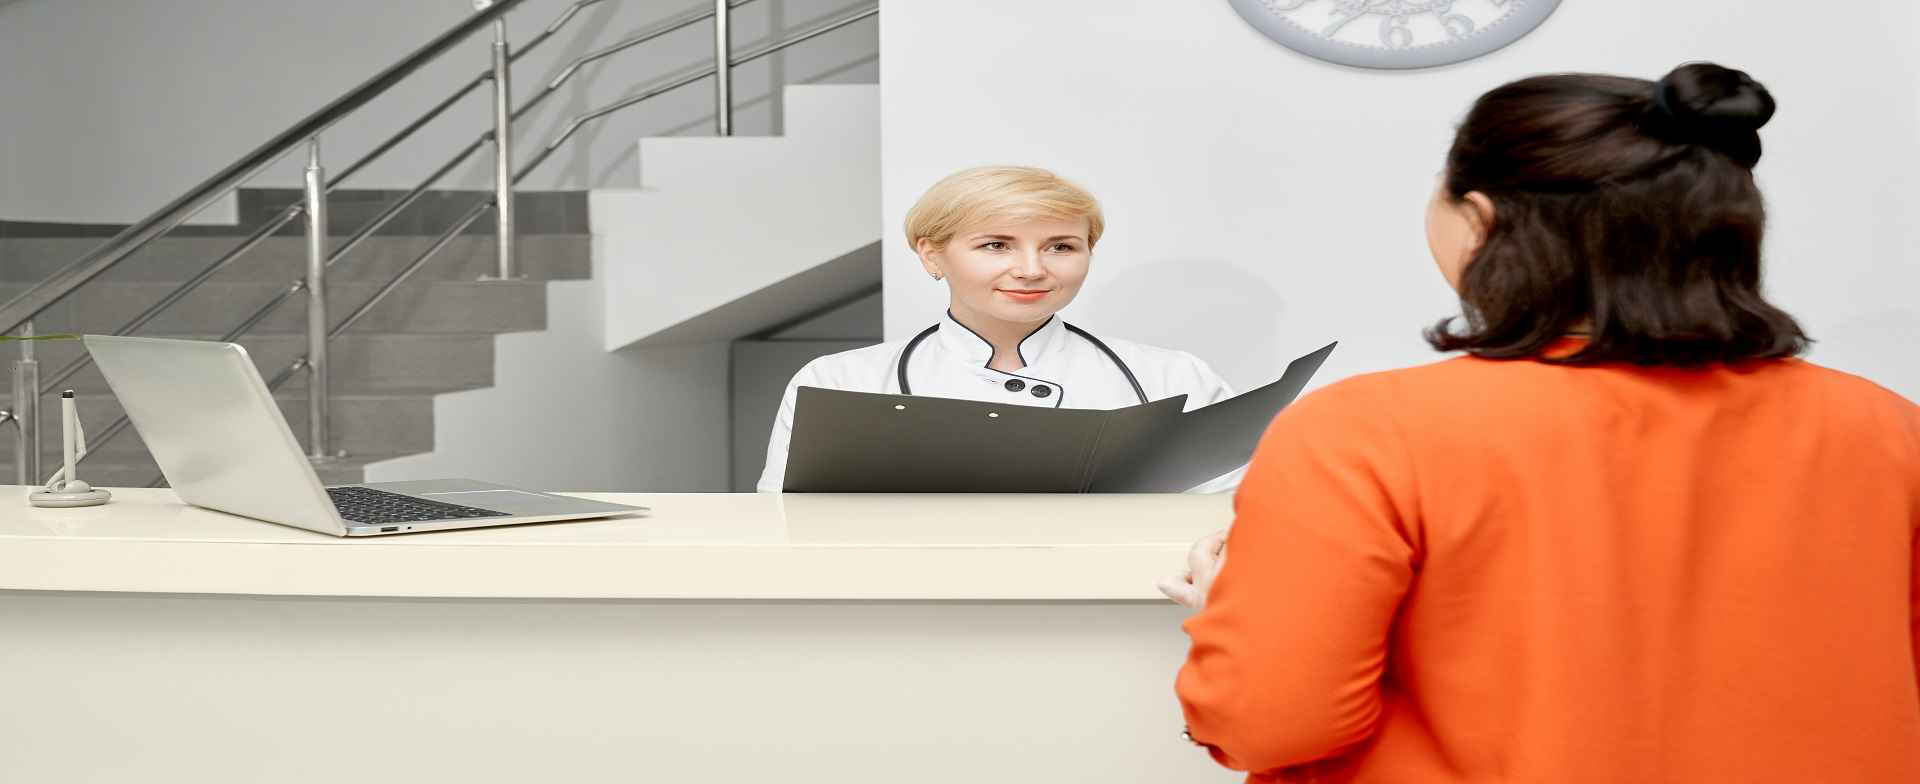 life insurance health questionnaire discussion with doctor